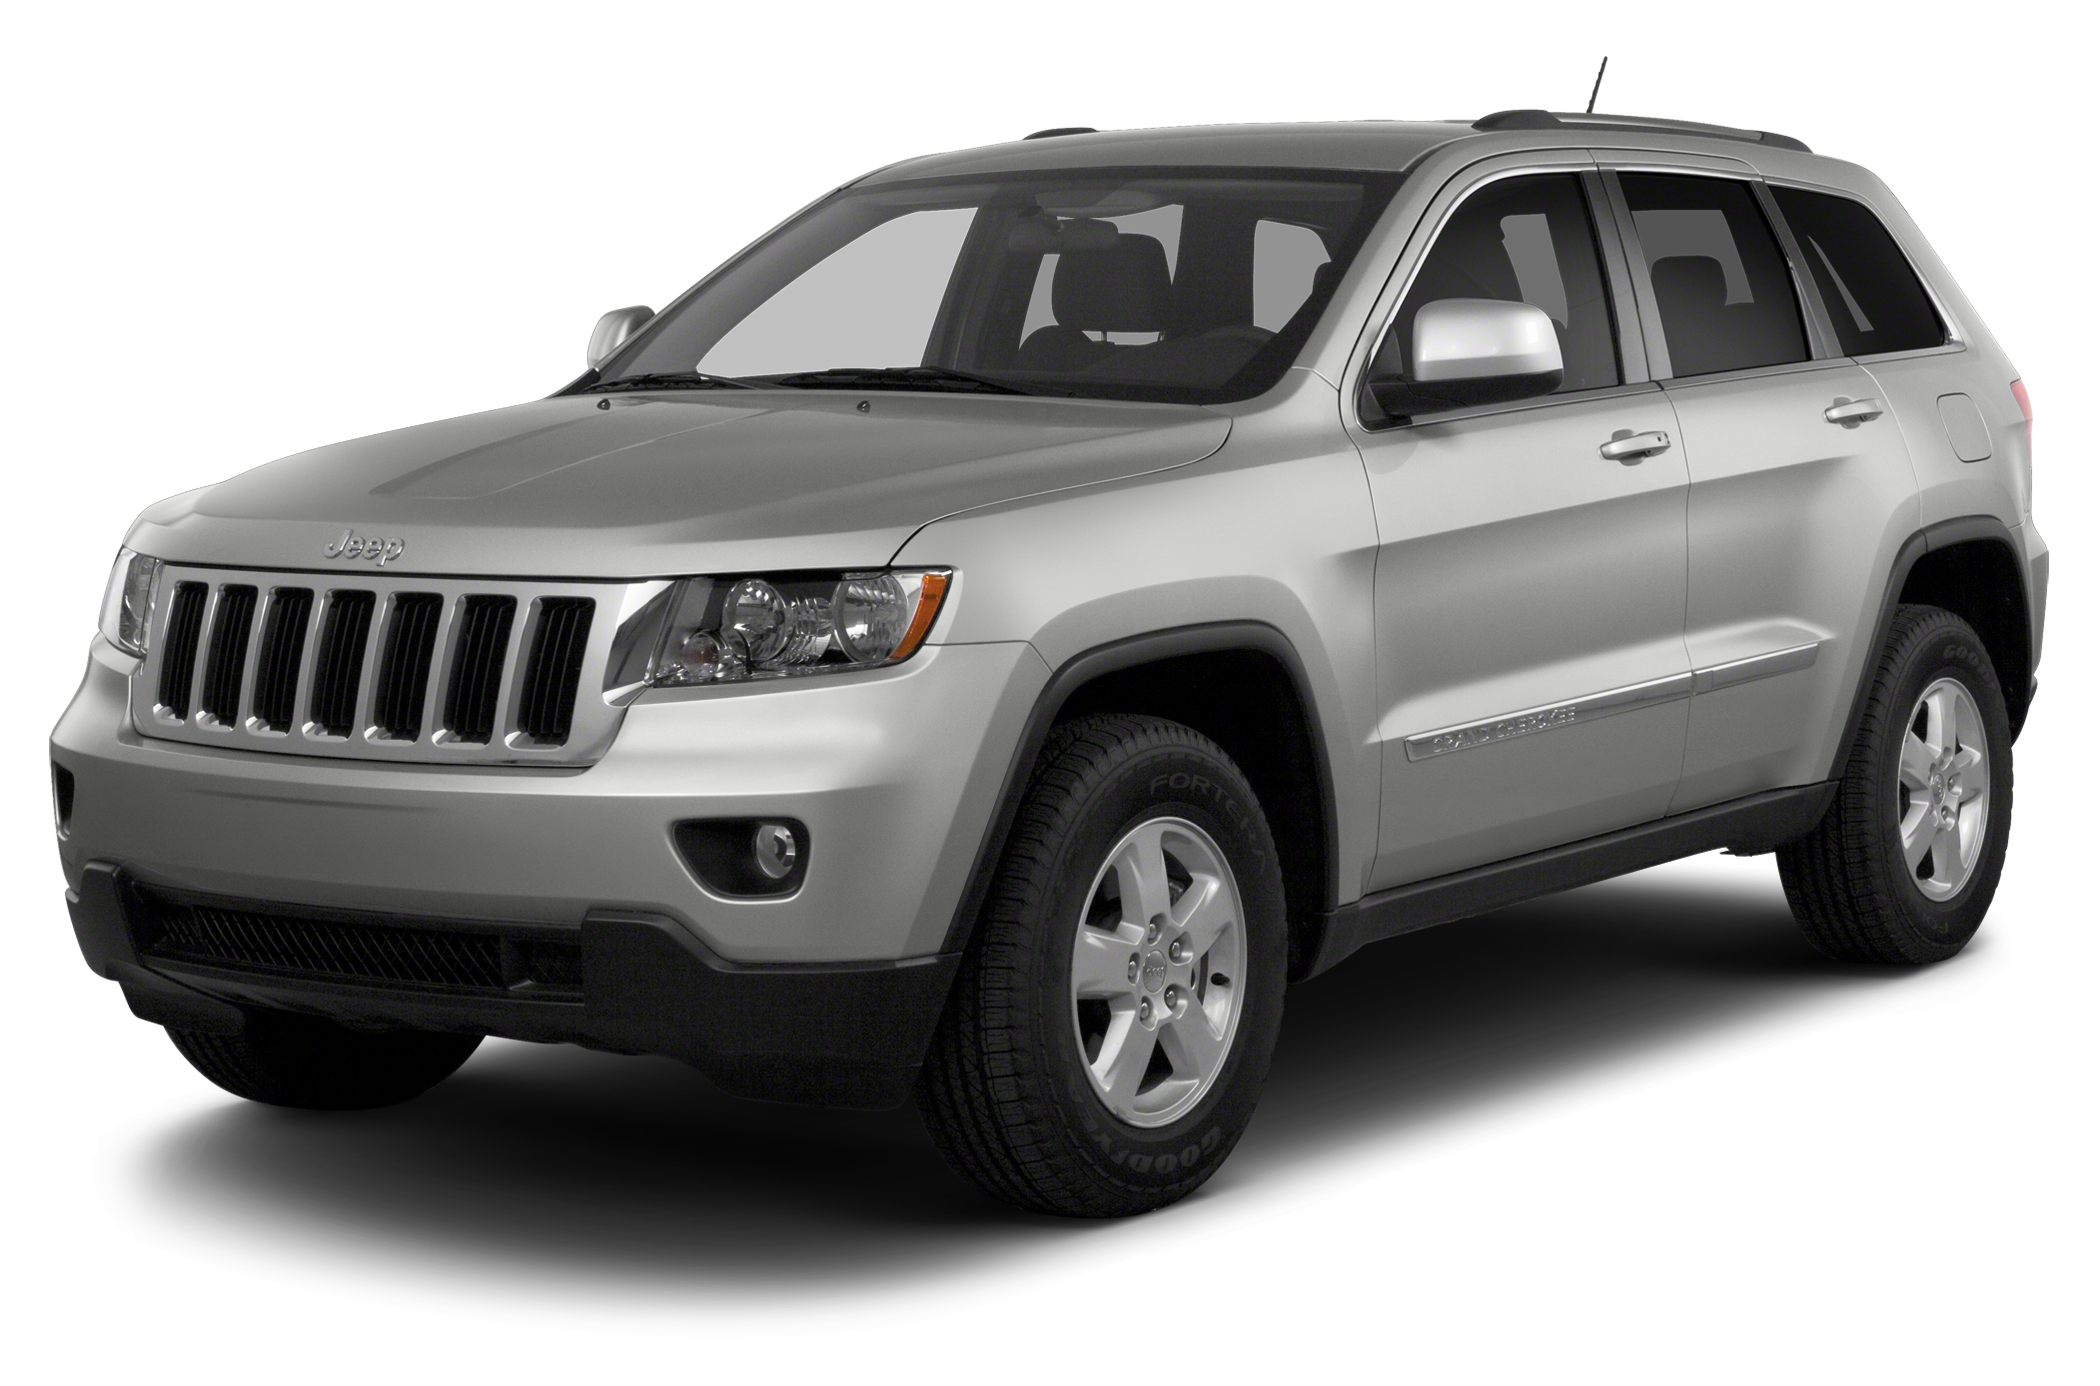 2013 Jeep Grand Cherokee Laredo SUV for sale in Greenville for $25,000 with 31,786 miles.